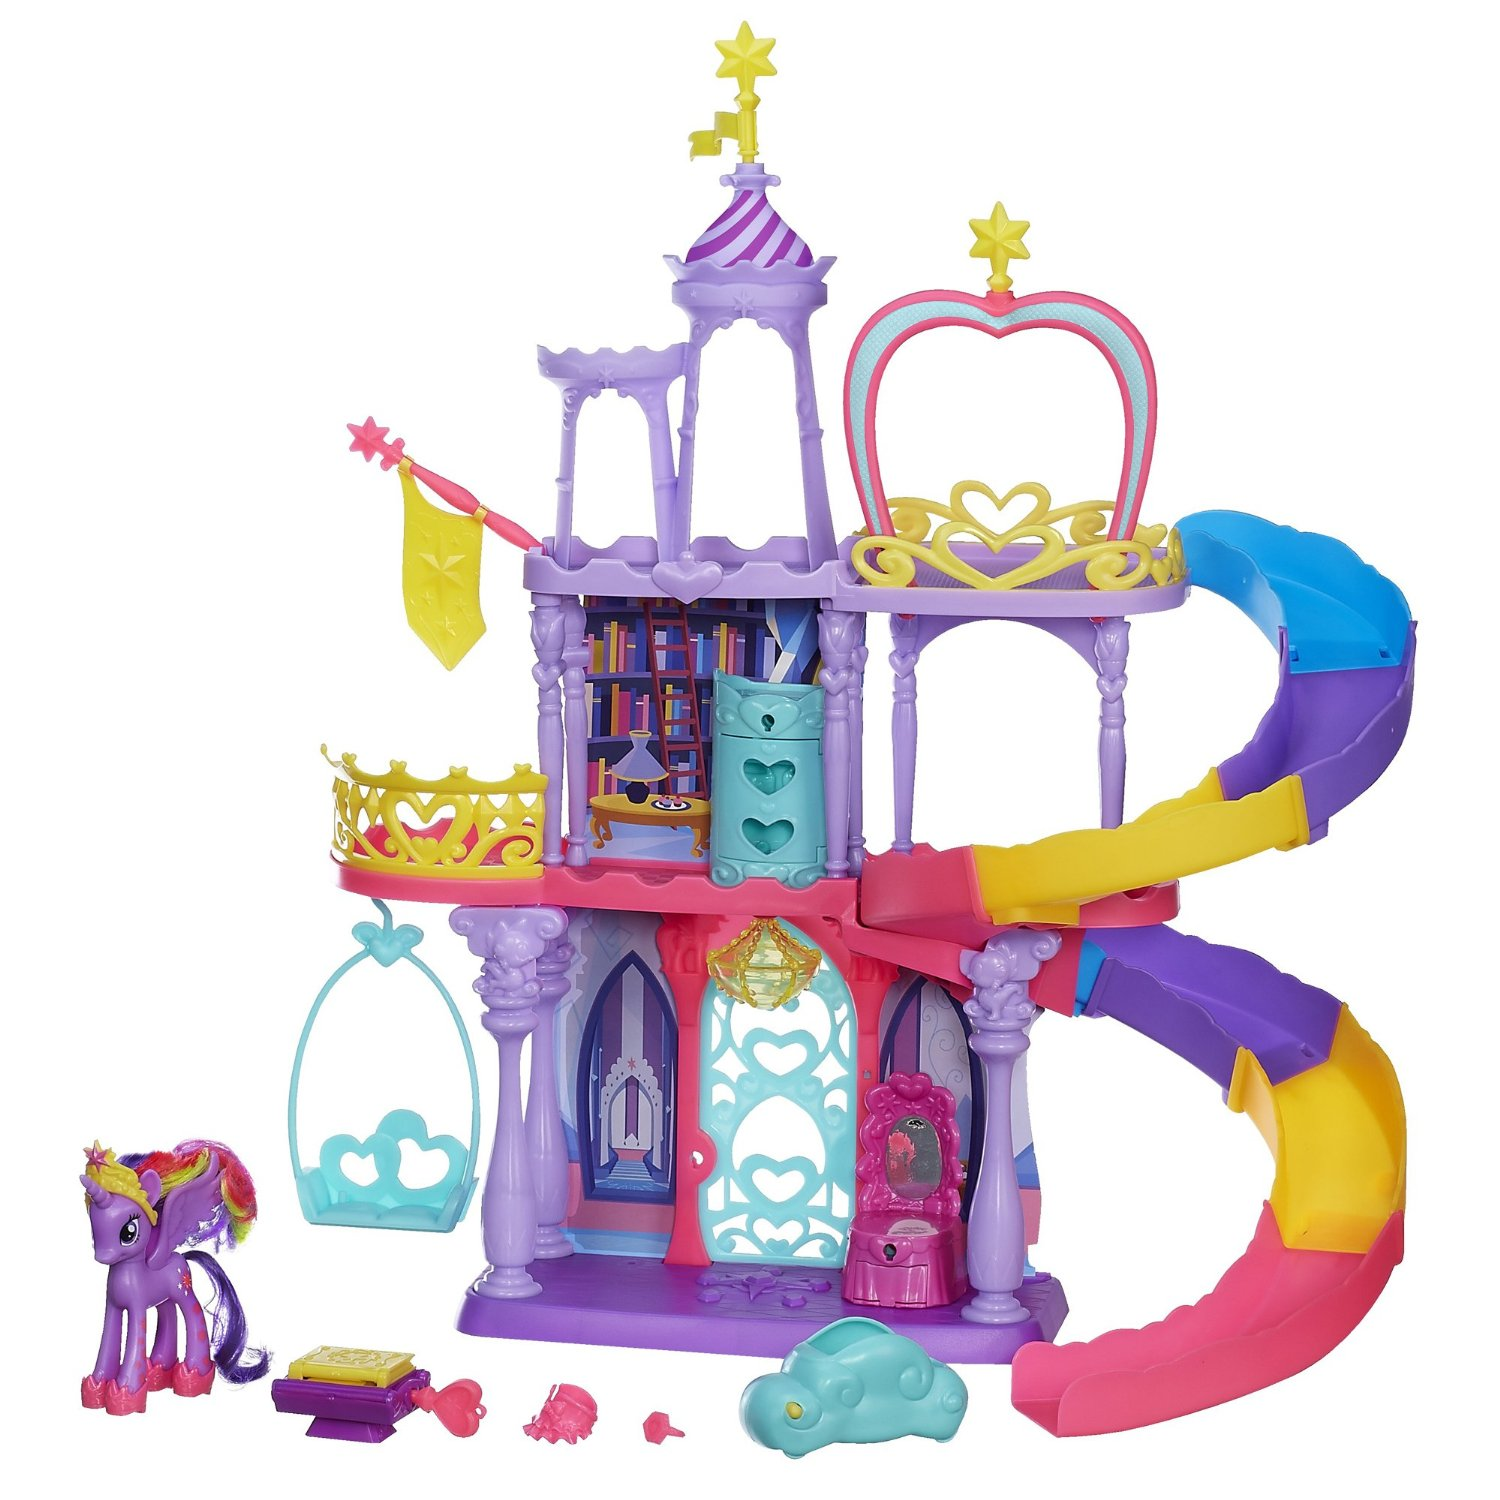 Amazon My Little Pony Friendship Rainbow Kingdom Playset 29 99 The Coupon Challenge